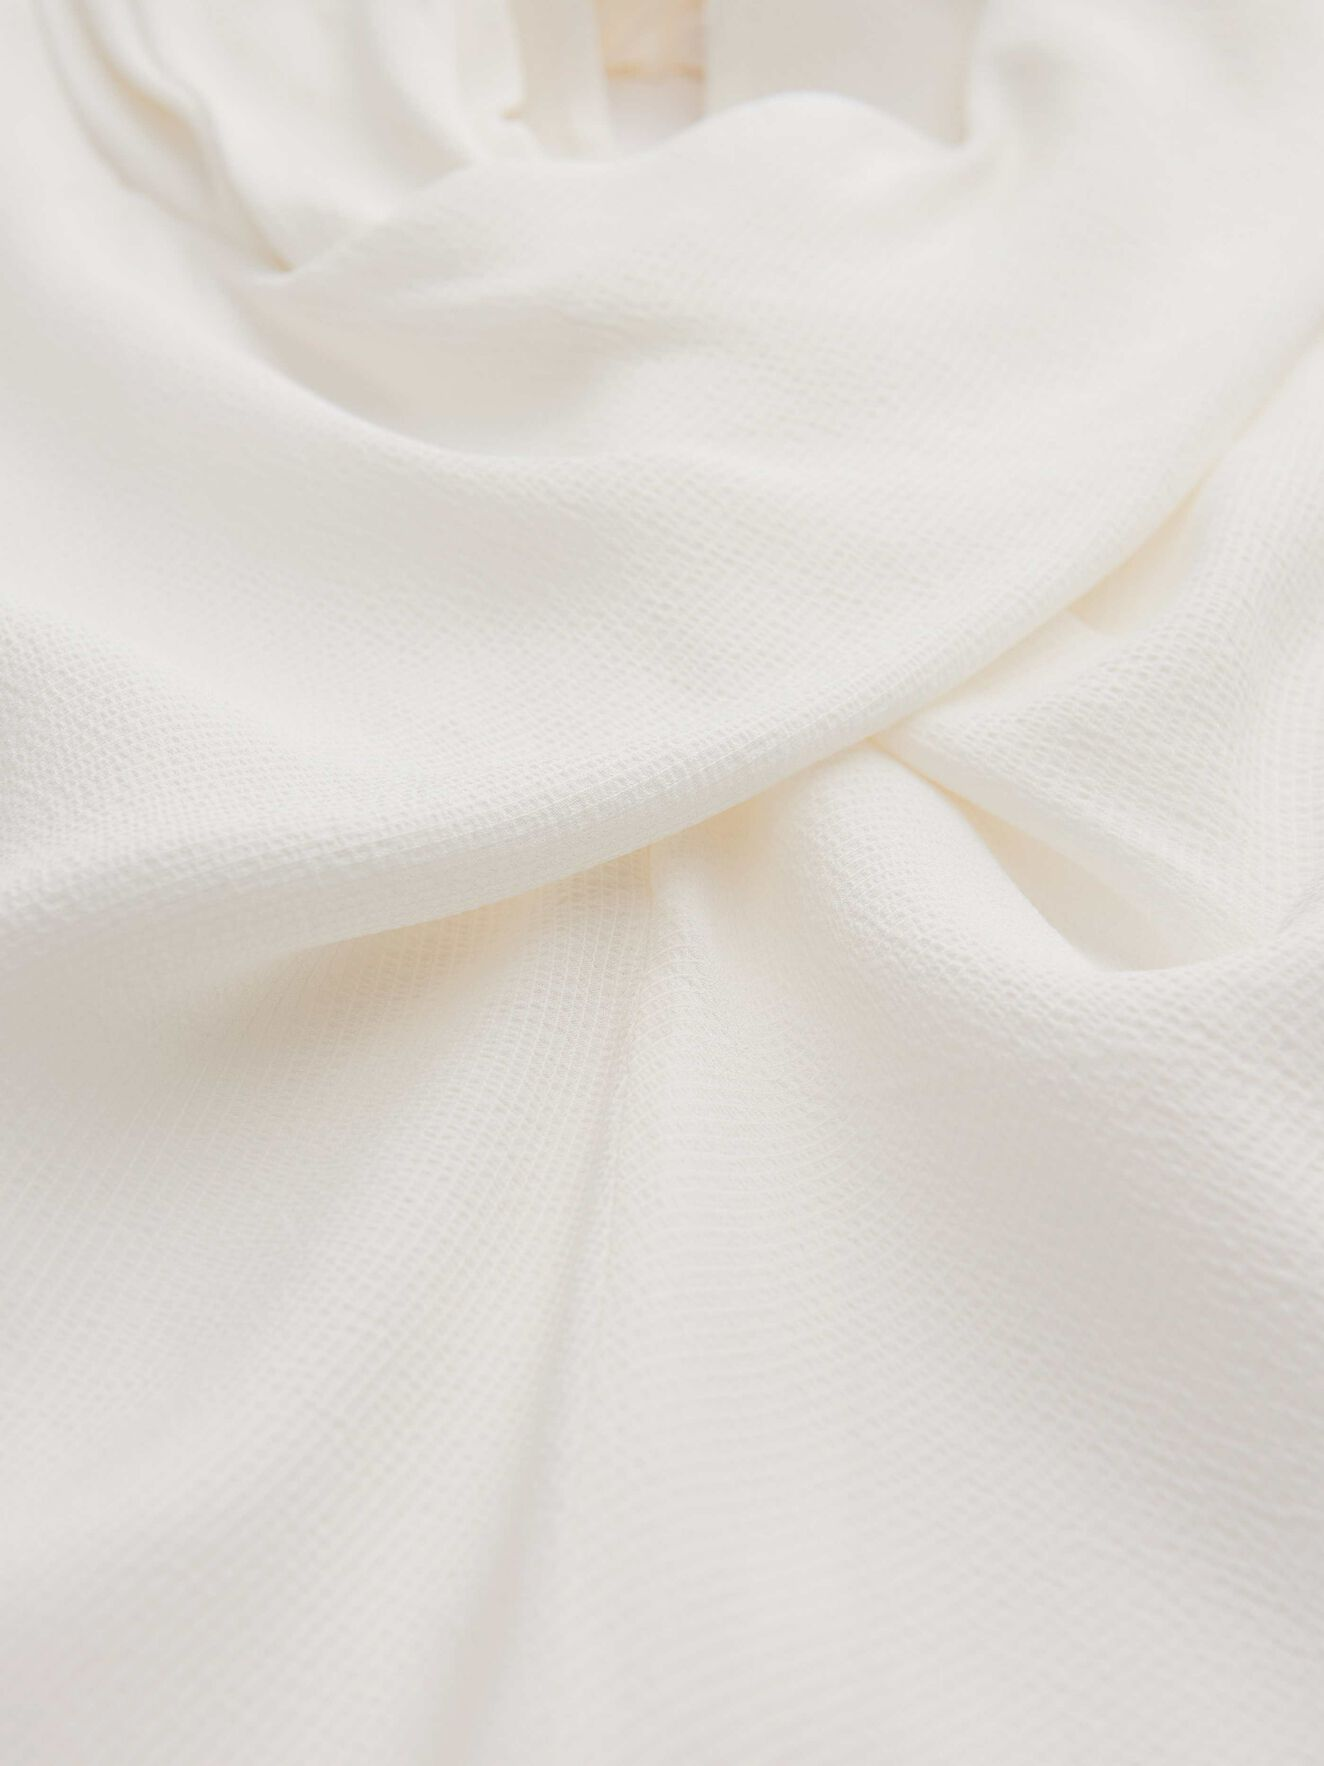 Pappus V Shirt in Whipped Cream from Tiger of Sweden